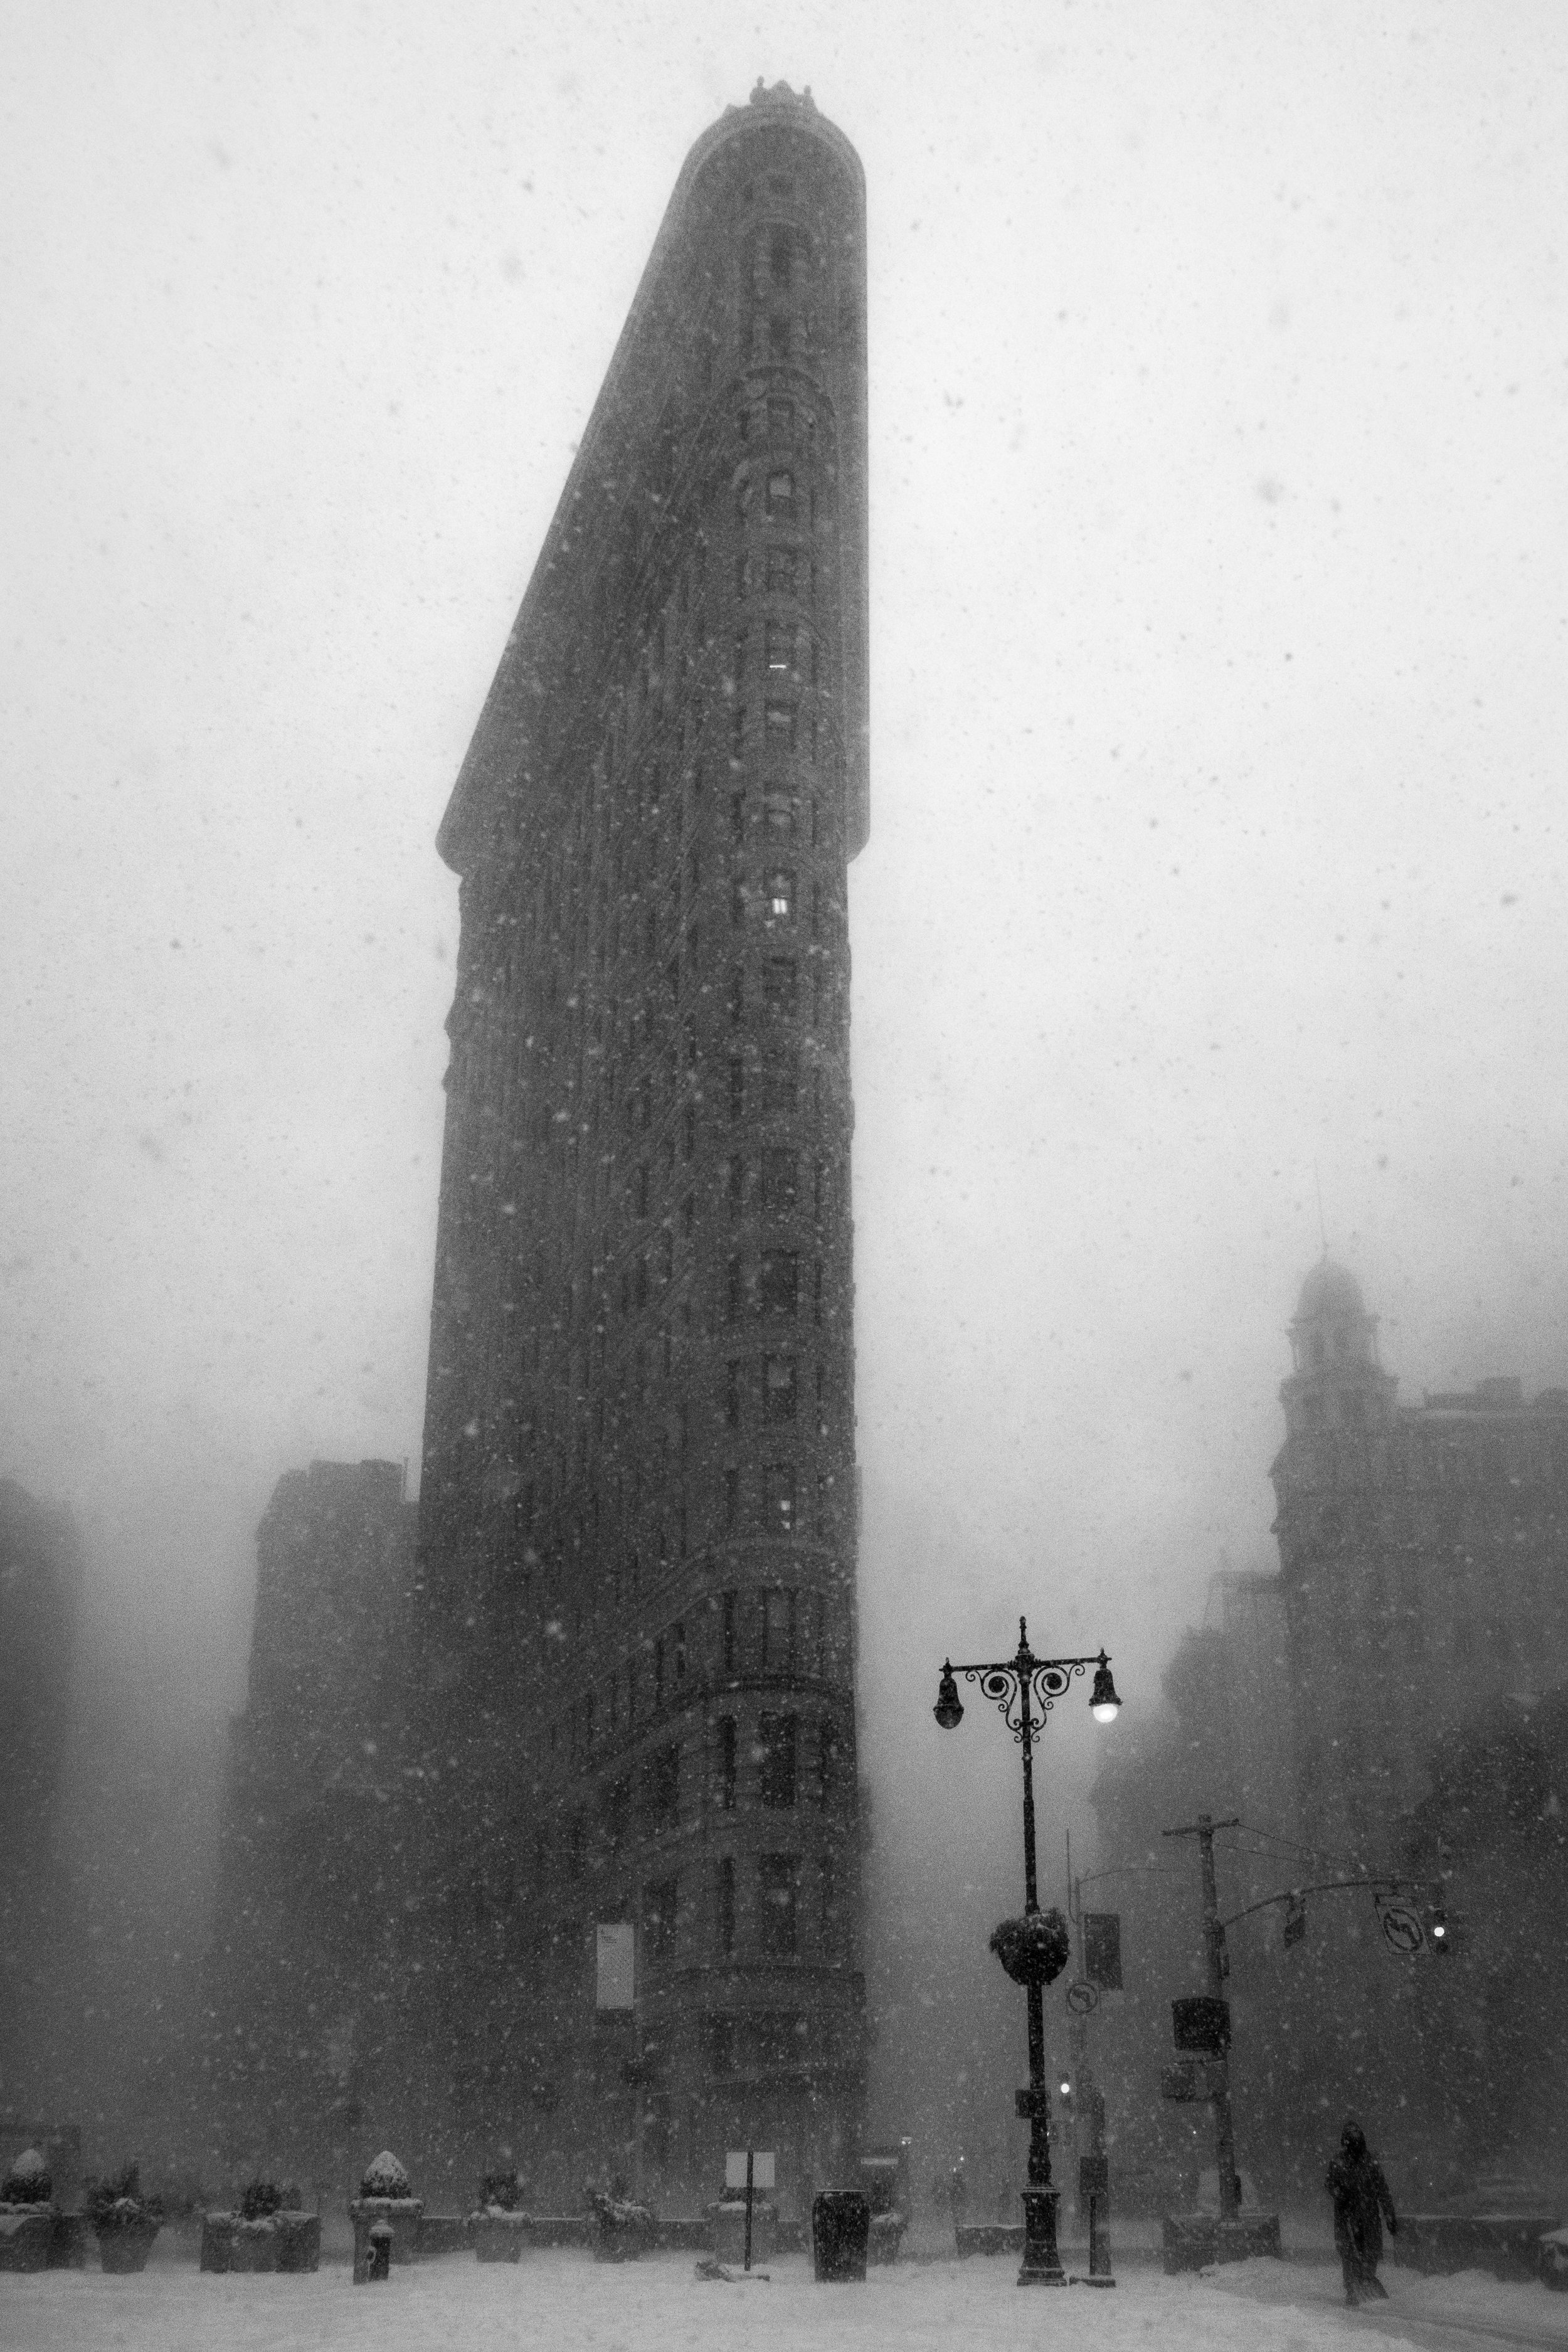 VANISHING FLATIRON BUILDING